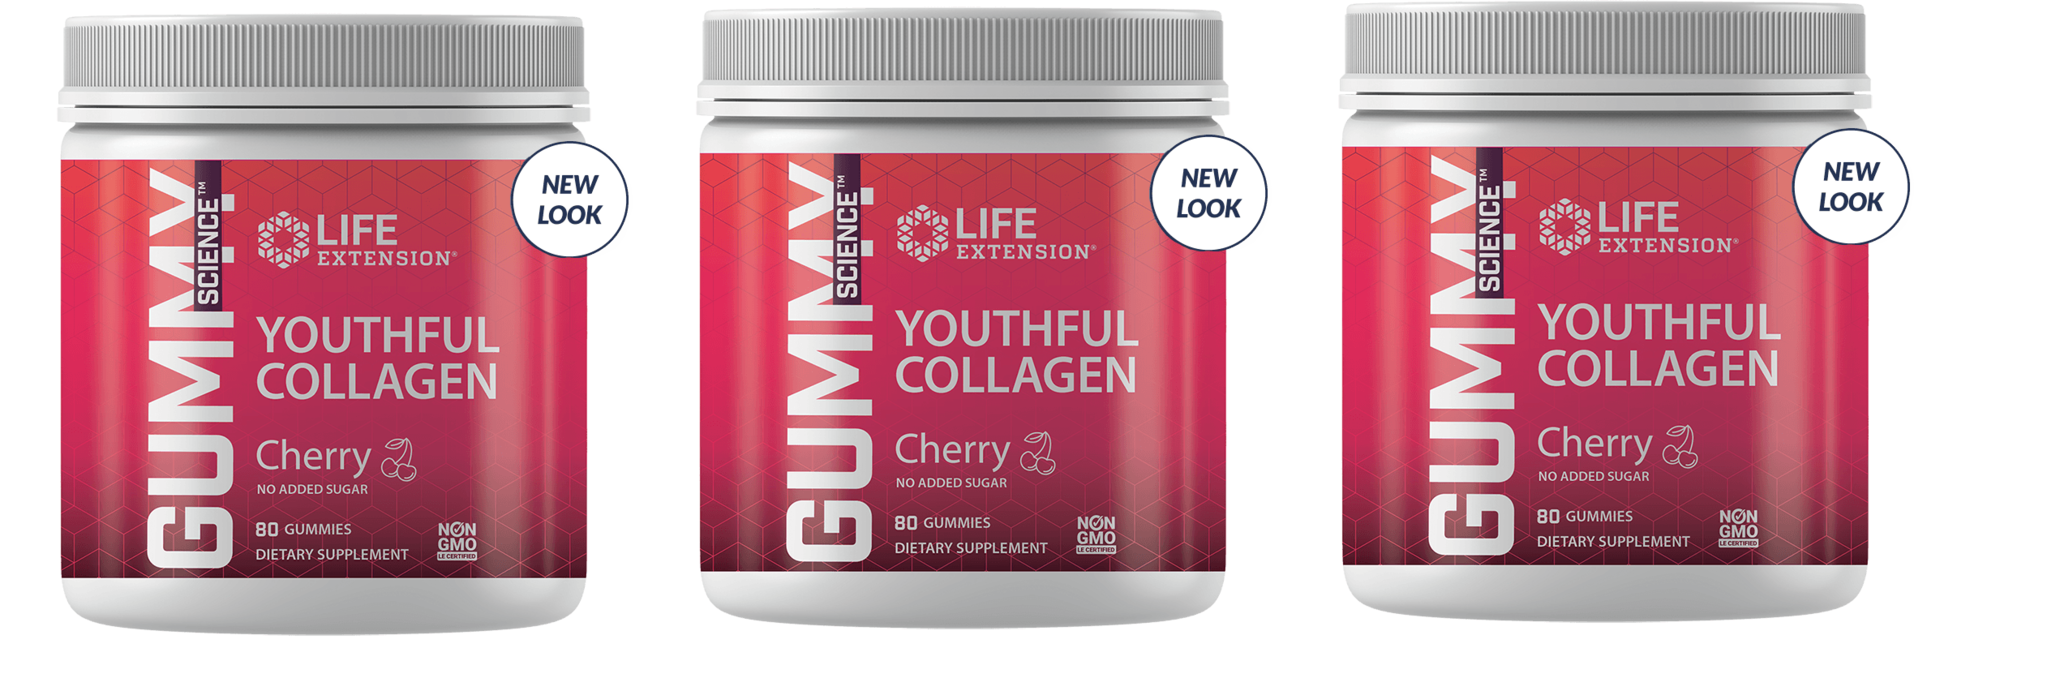 Life Extension Gummy Science™ Youthful Collagen (cherry), 80 Gummies, 3-packs